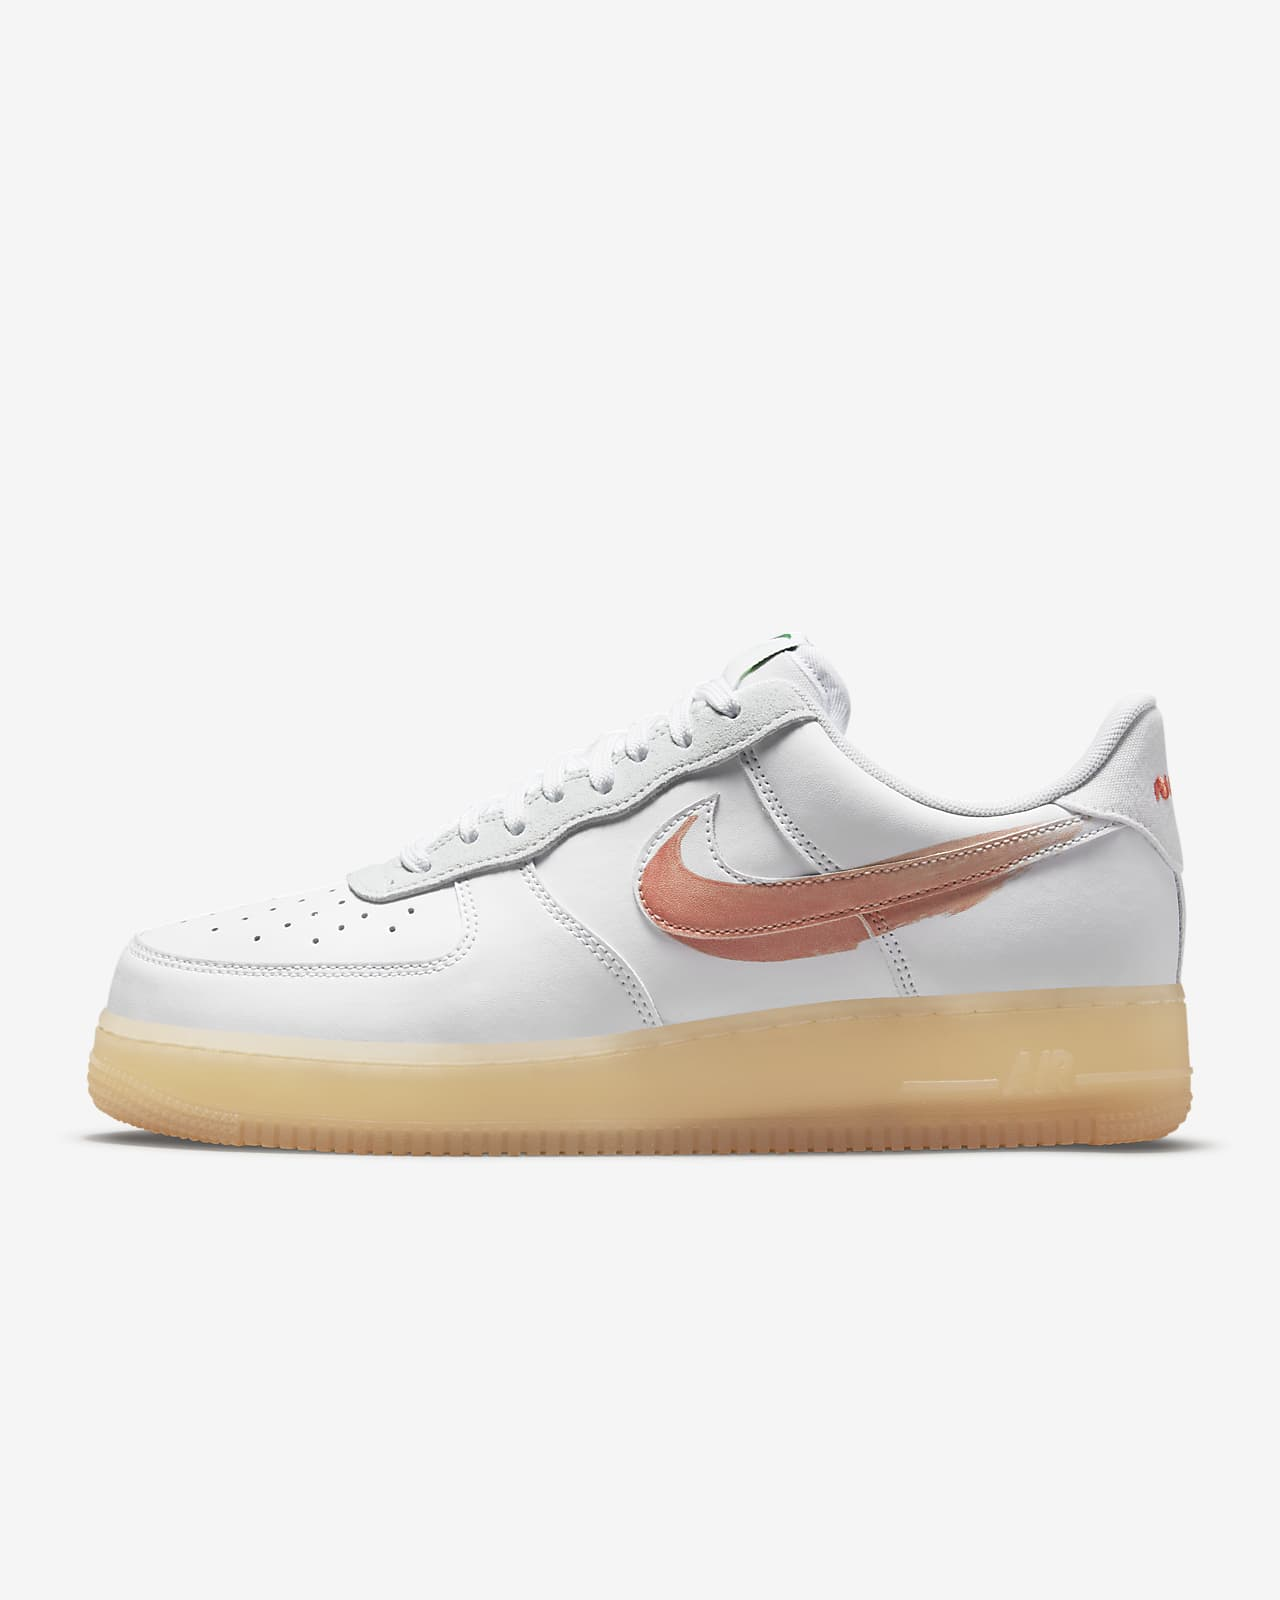 Nike Flyleather Air Force 1 Men's Shoes